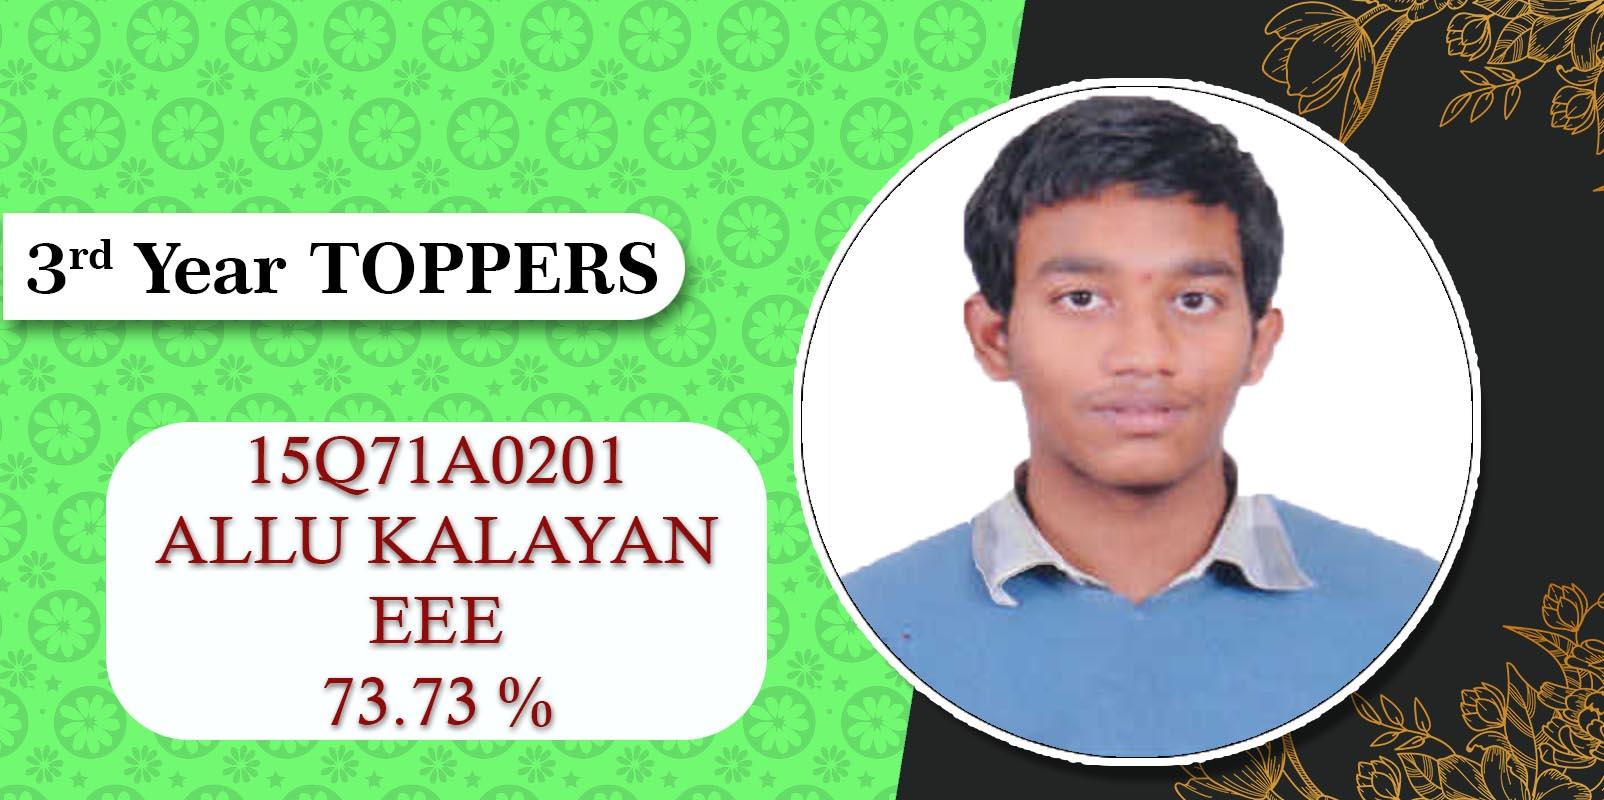 Topper Image